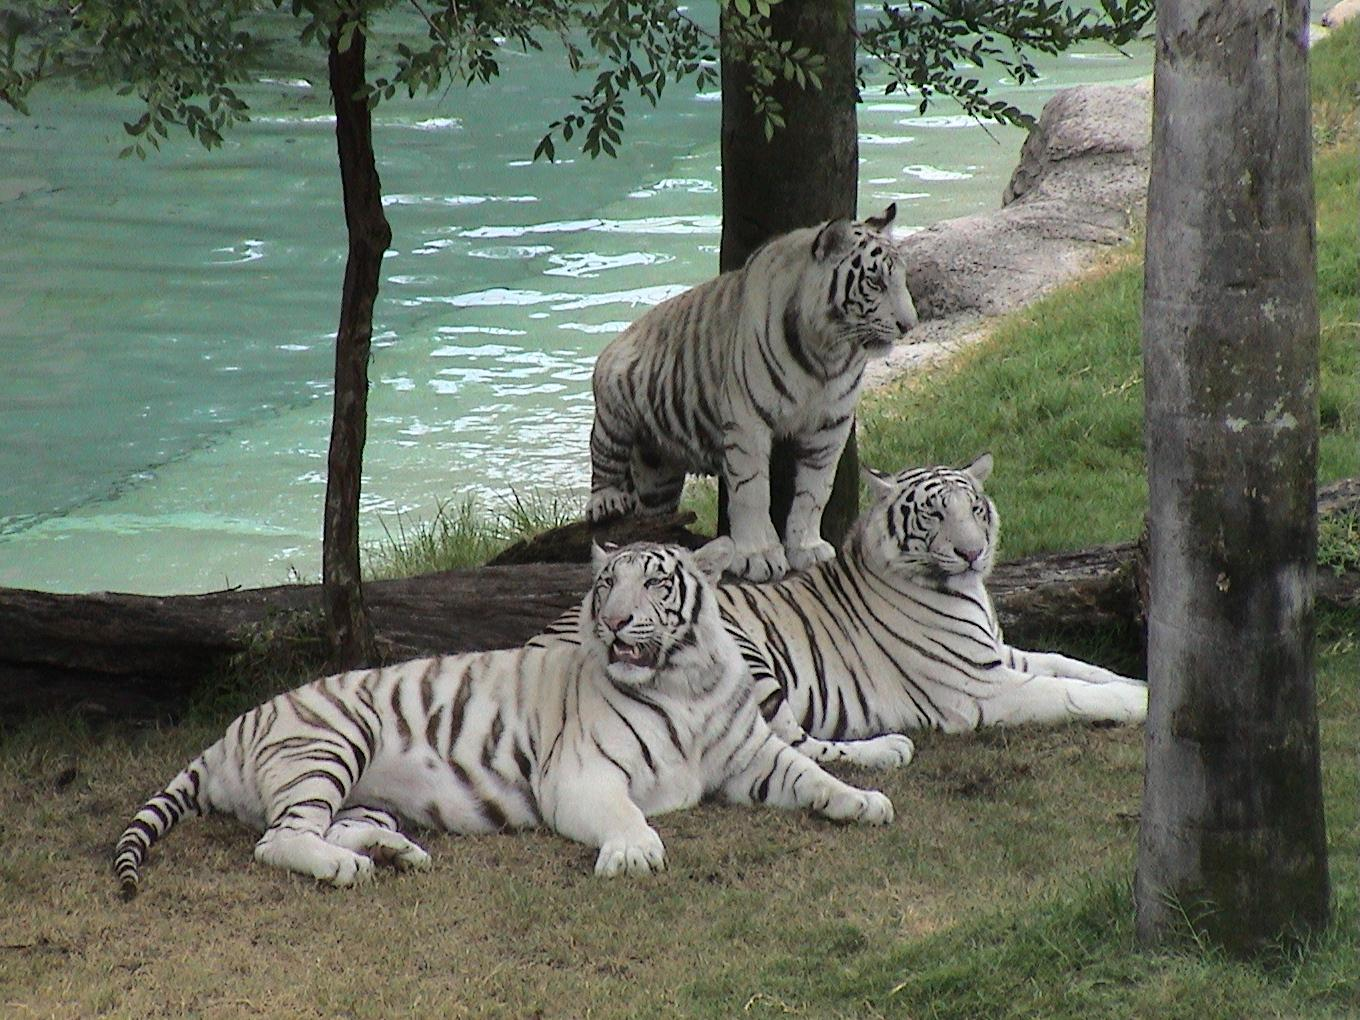 Cute Baby Animal Pictures Wallpapers Desktop Nature Wallpaper White Tigers Free Desktop